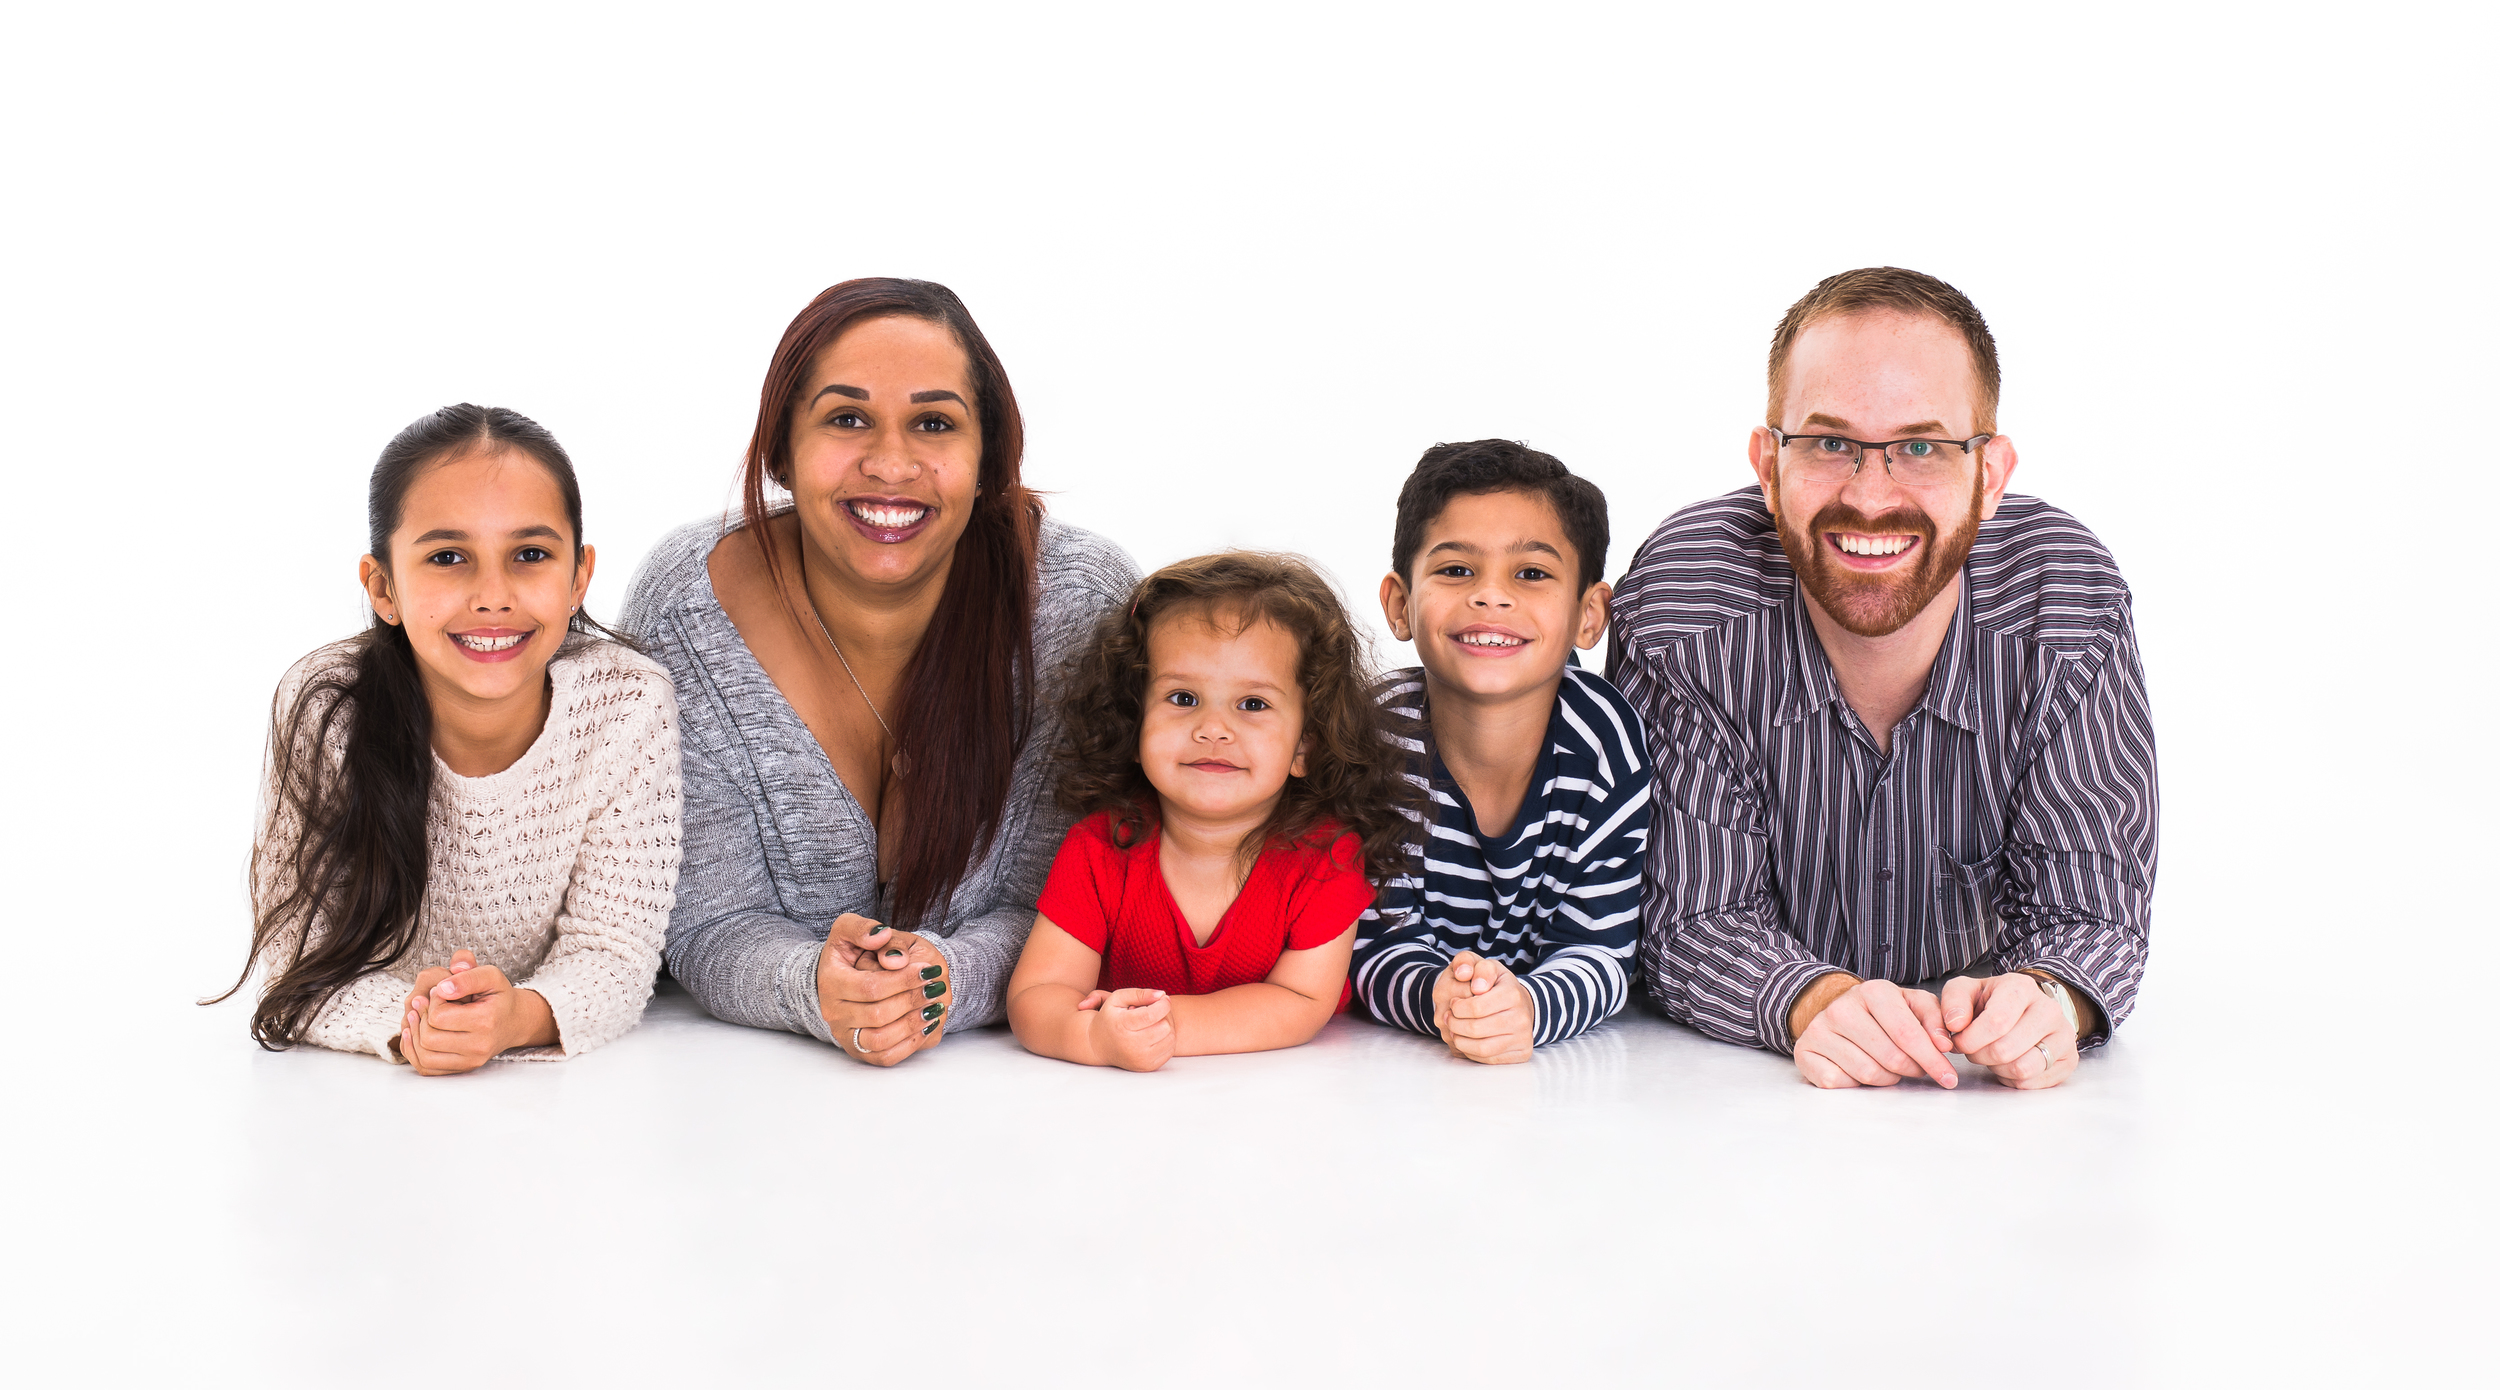 Family portraits essex, family photography essex, family portraits benfleet, family photo shoots benfleet, family photography southend, family photo shoot southend, family portraits chelmsford